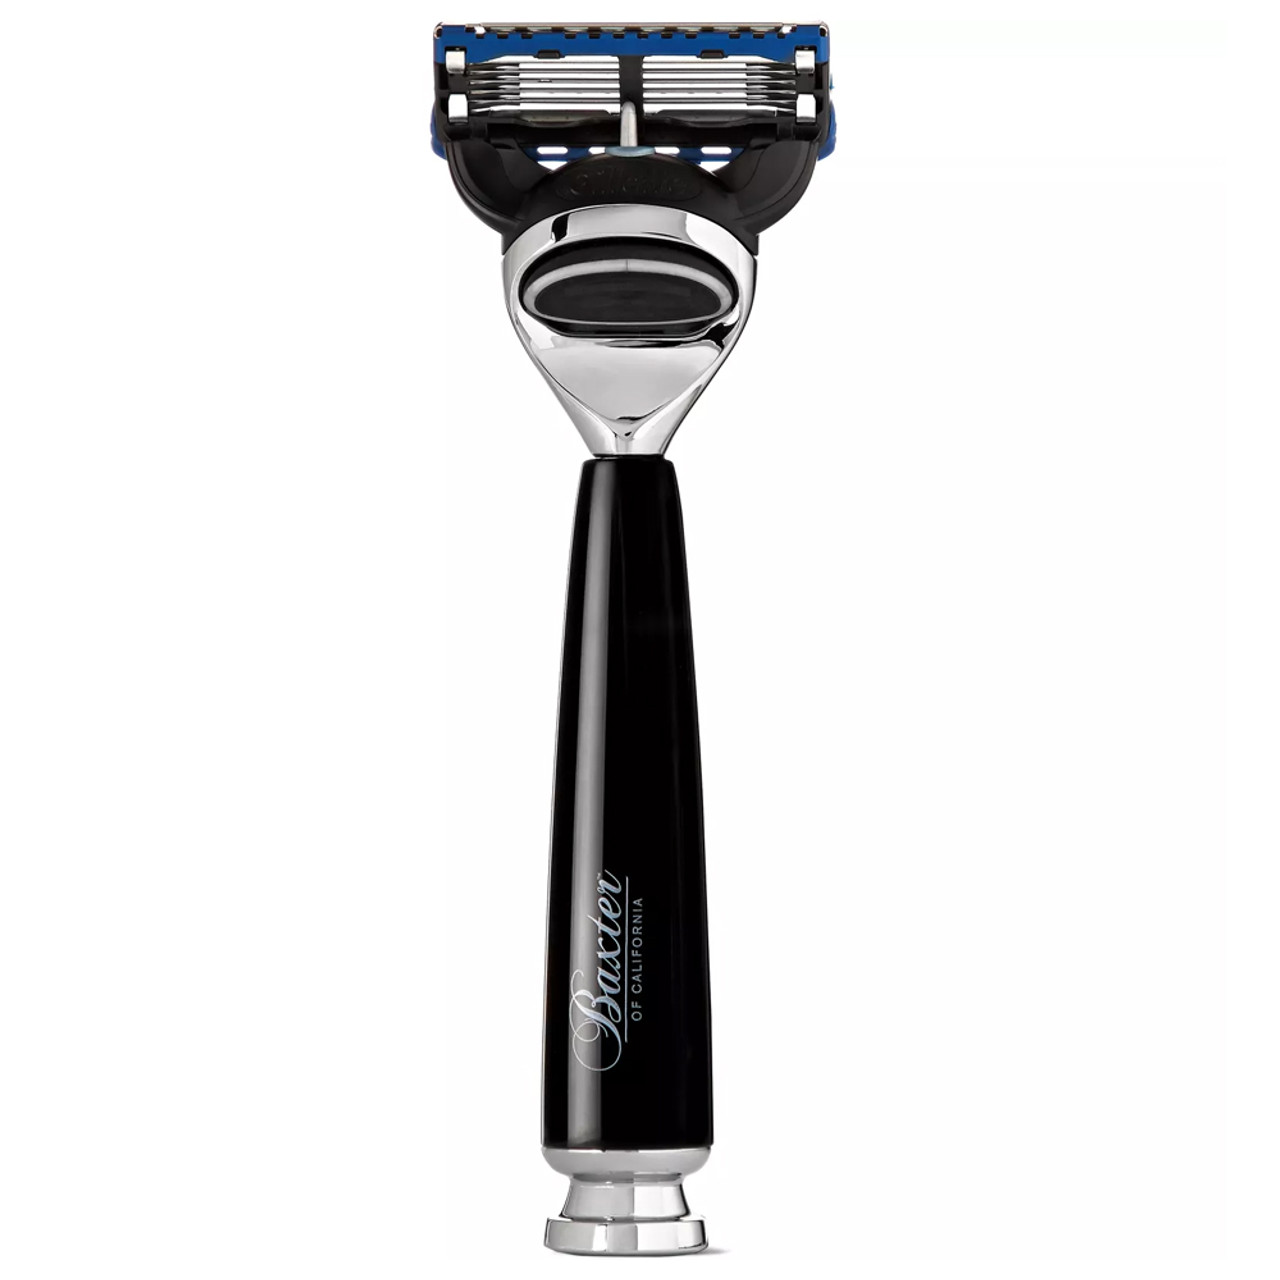 Baxter of California Black 5 Blade Cartridge Razor